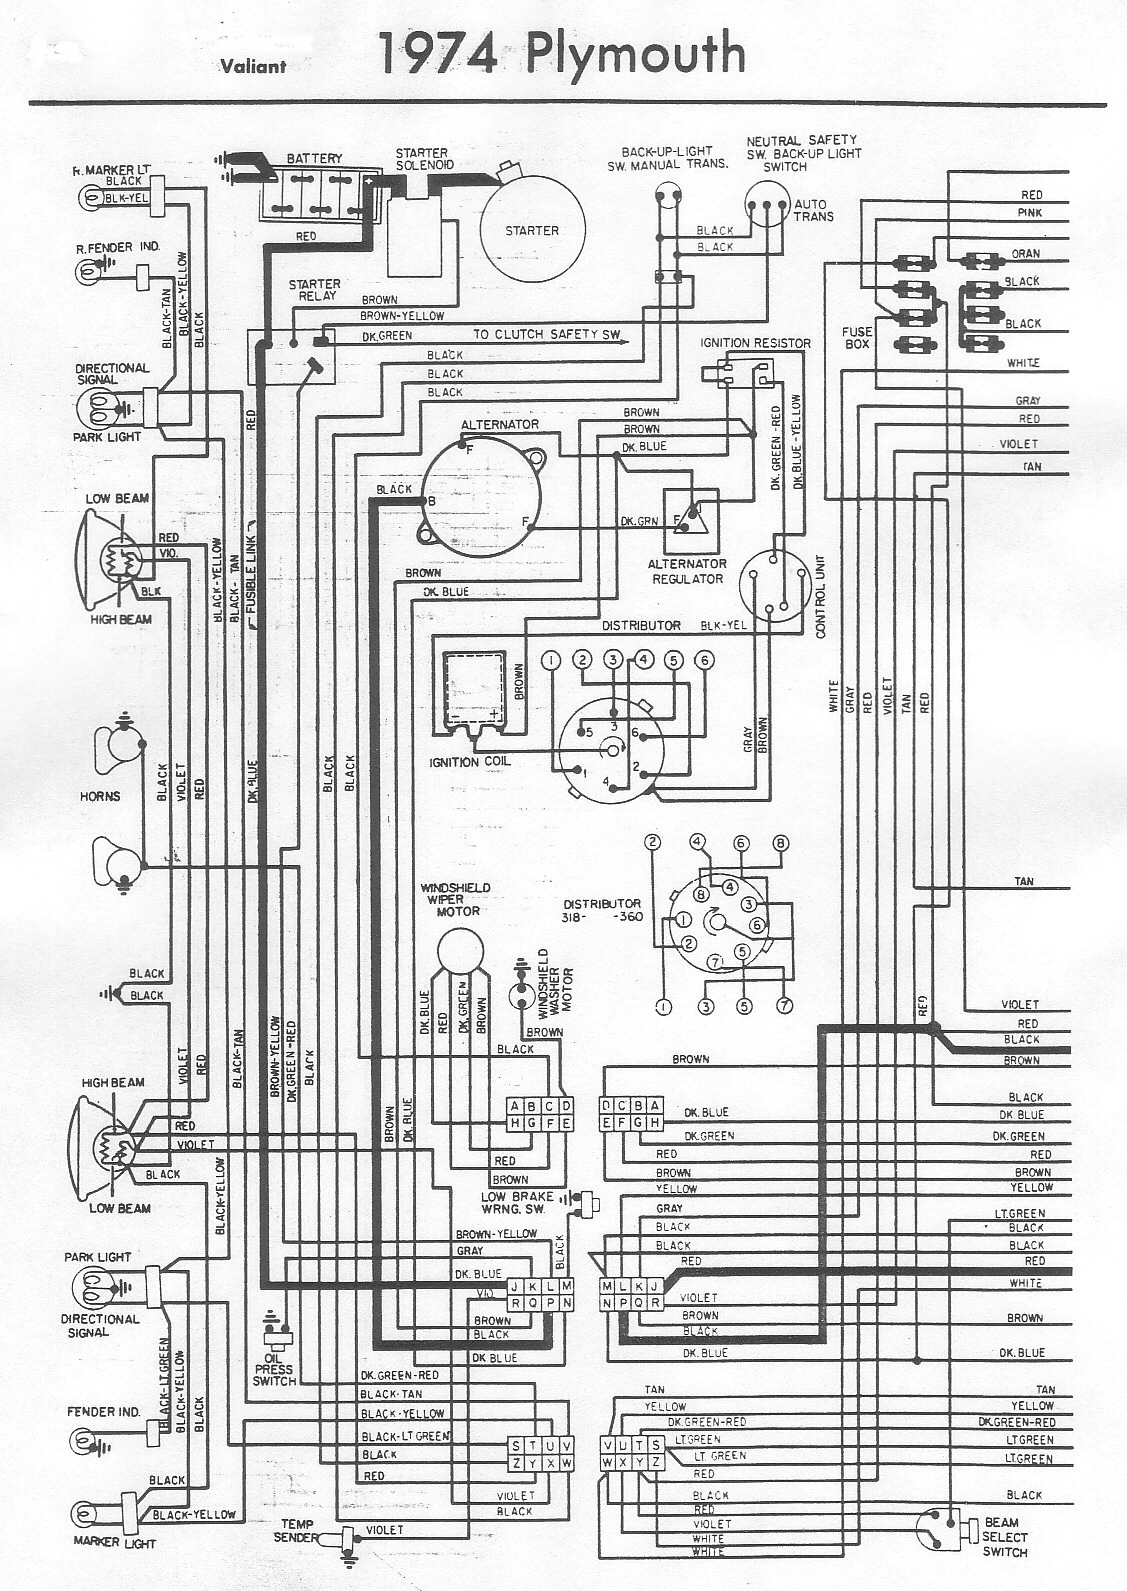 1973 Dodge Dart Fuse Box Wiring Diagram Libraries 2013 Challenger Diagrams Scematicplymouth Duster Simple